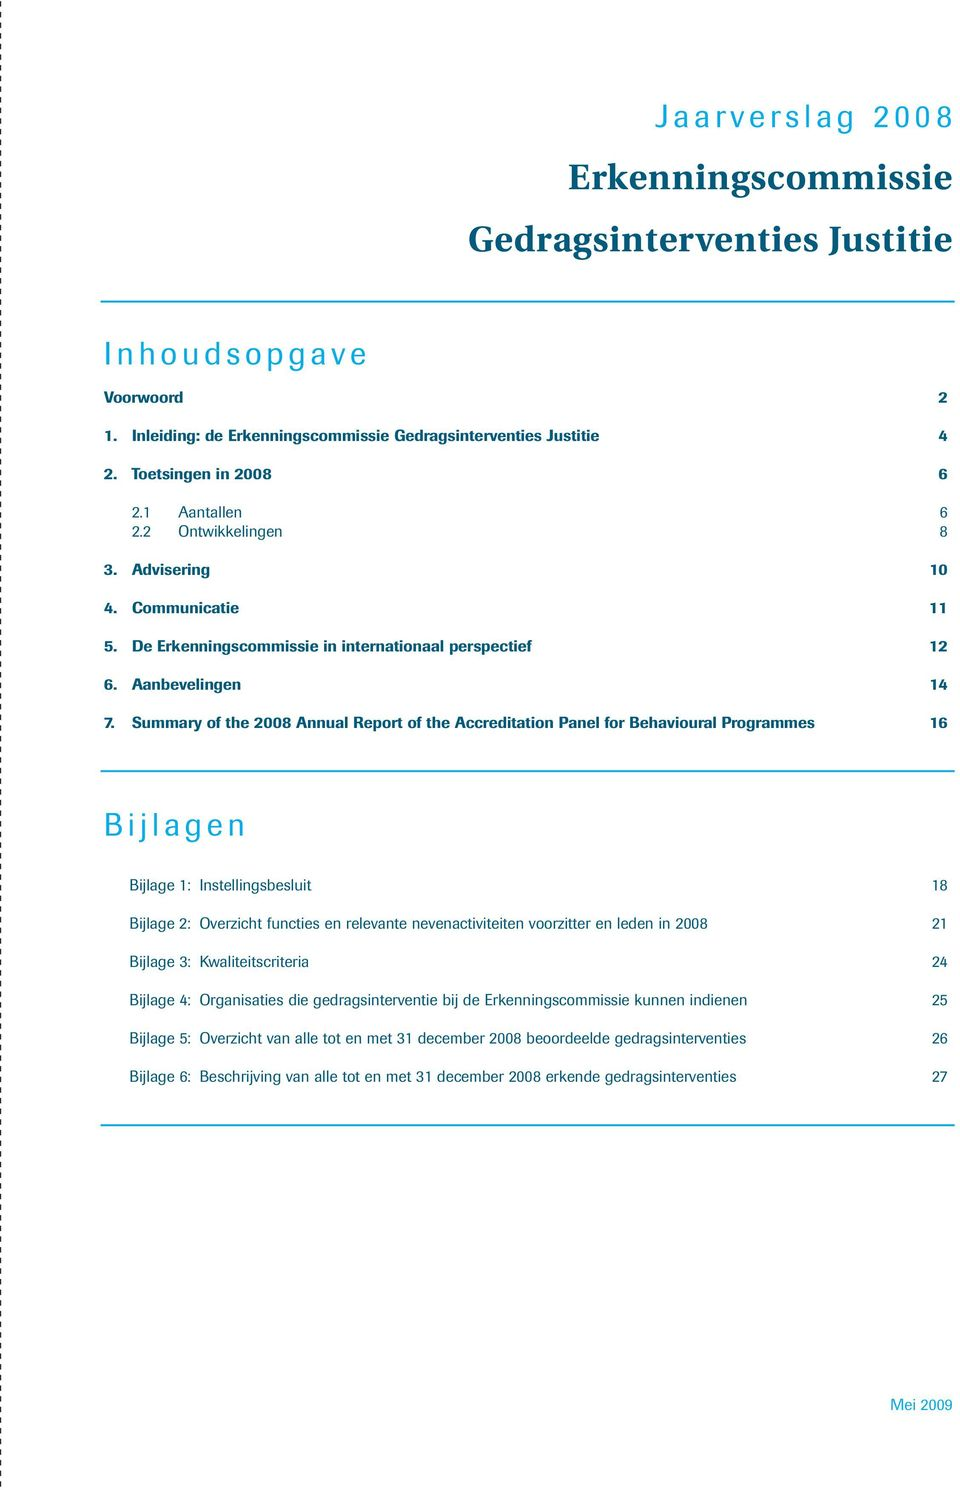 Summary of the 2008 Annual Report of the Accreditation Panel for Behavioural Programmes 16 B i j l a g e n Bijlage 1: Instellingsbesluit 18 Bijlage 2: Overzicht functies en relevante